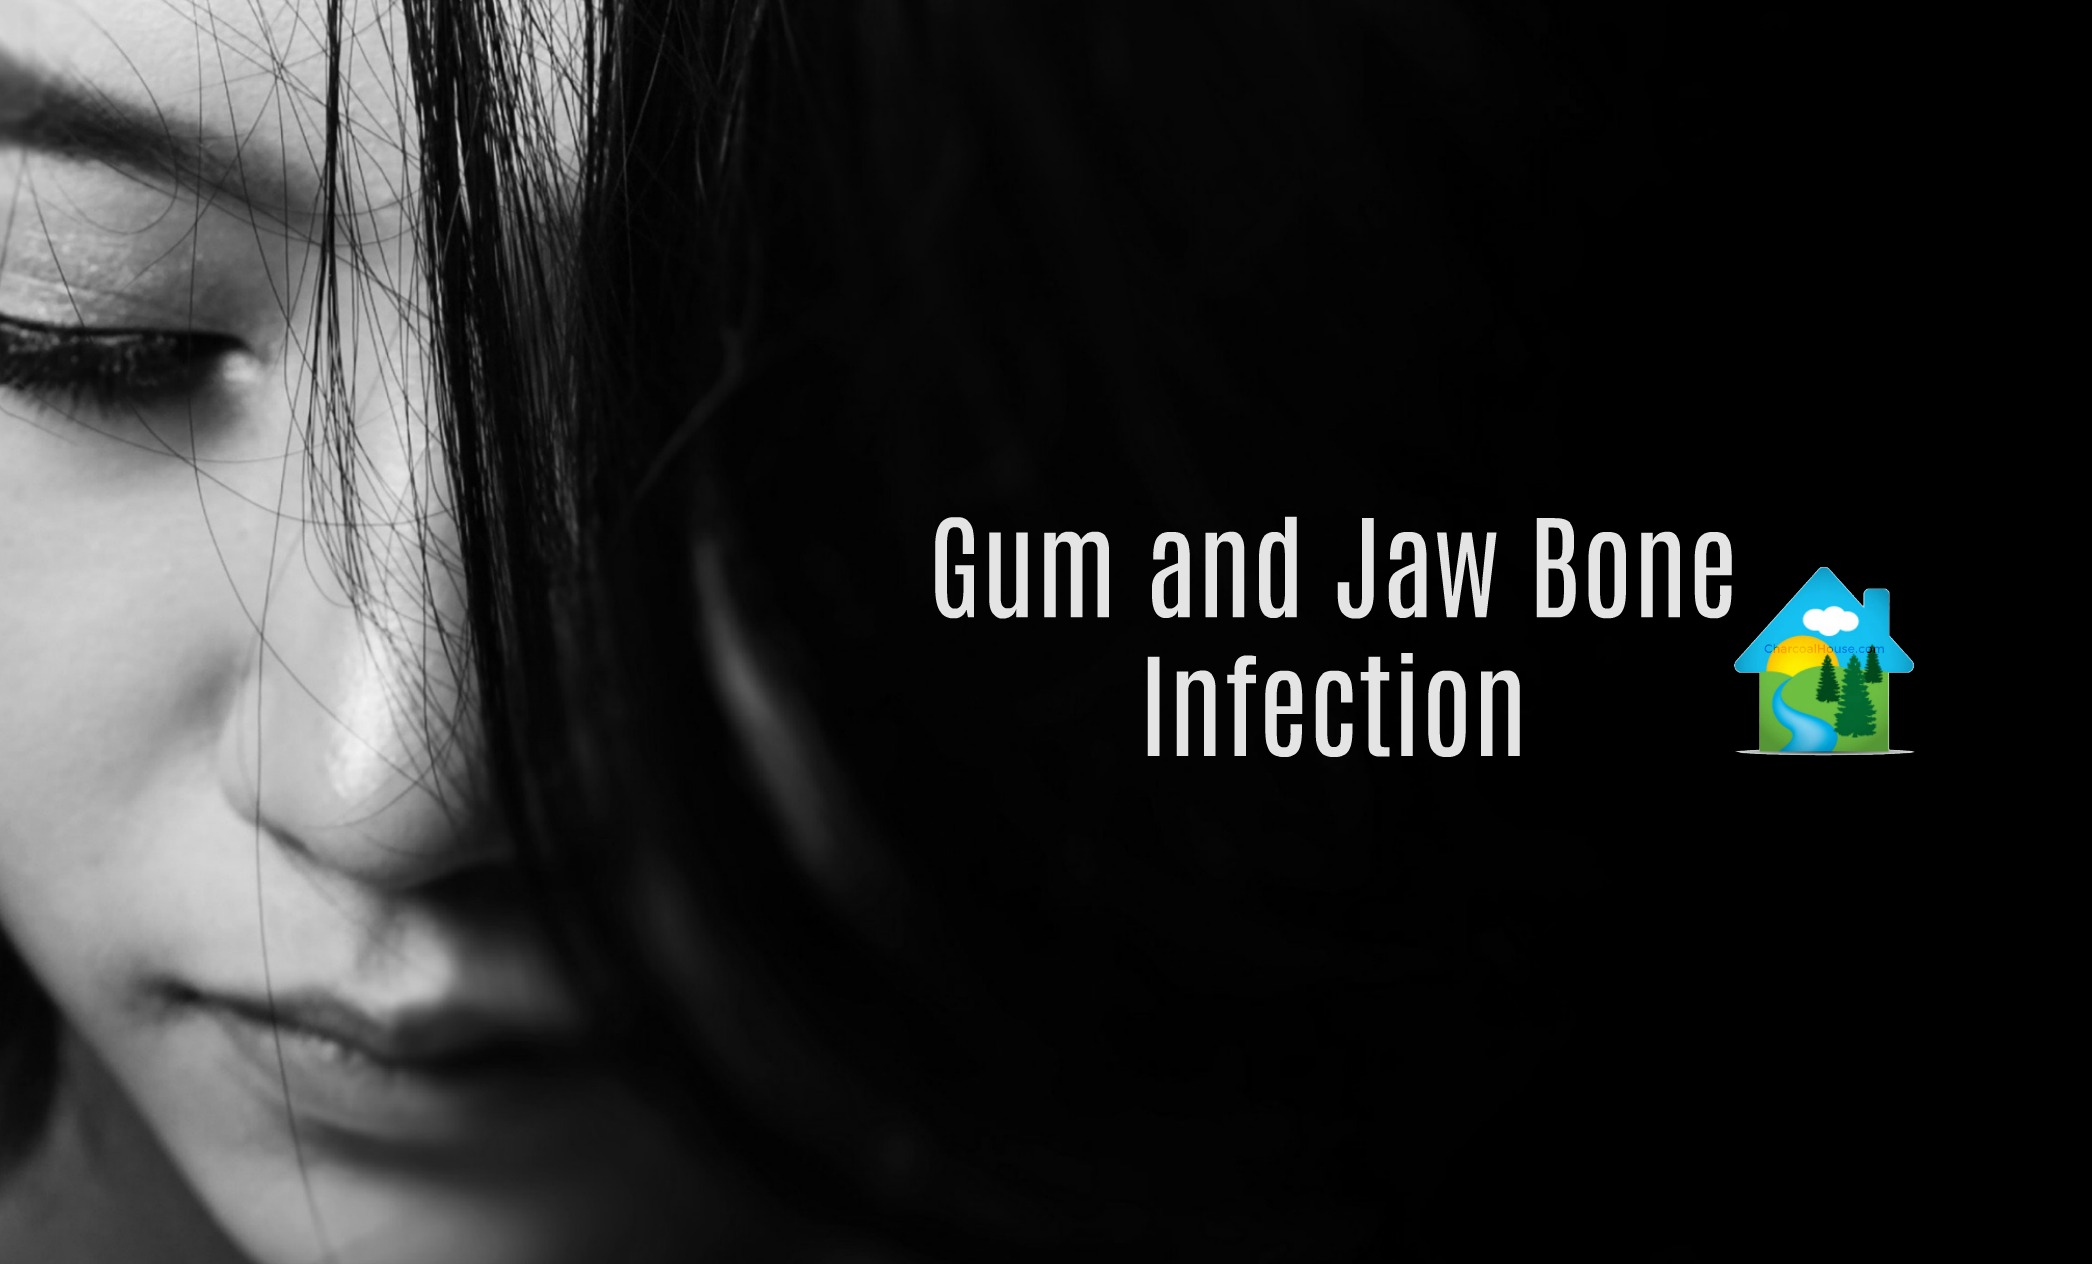 gum and jaw bone infection header - Charcoal for Gum and Jaw Bone Infection